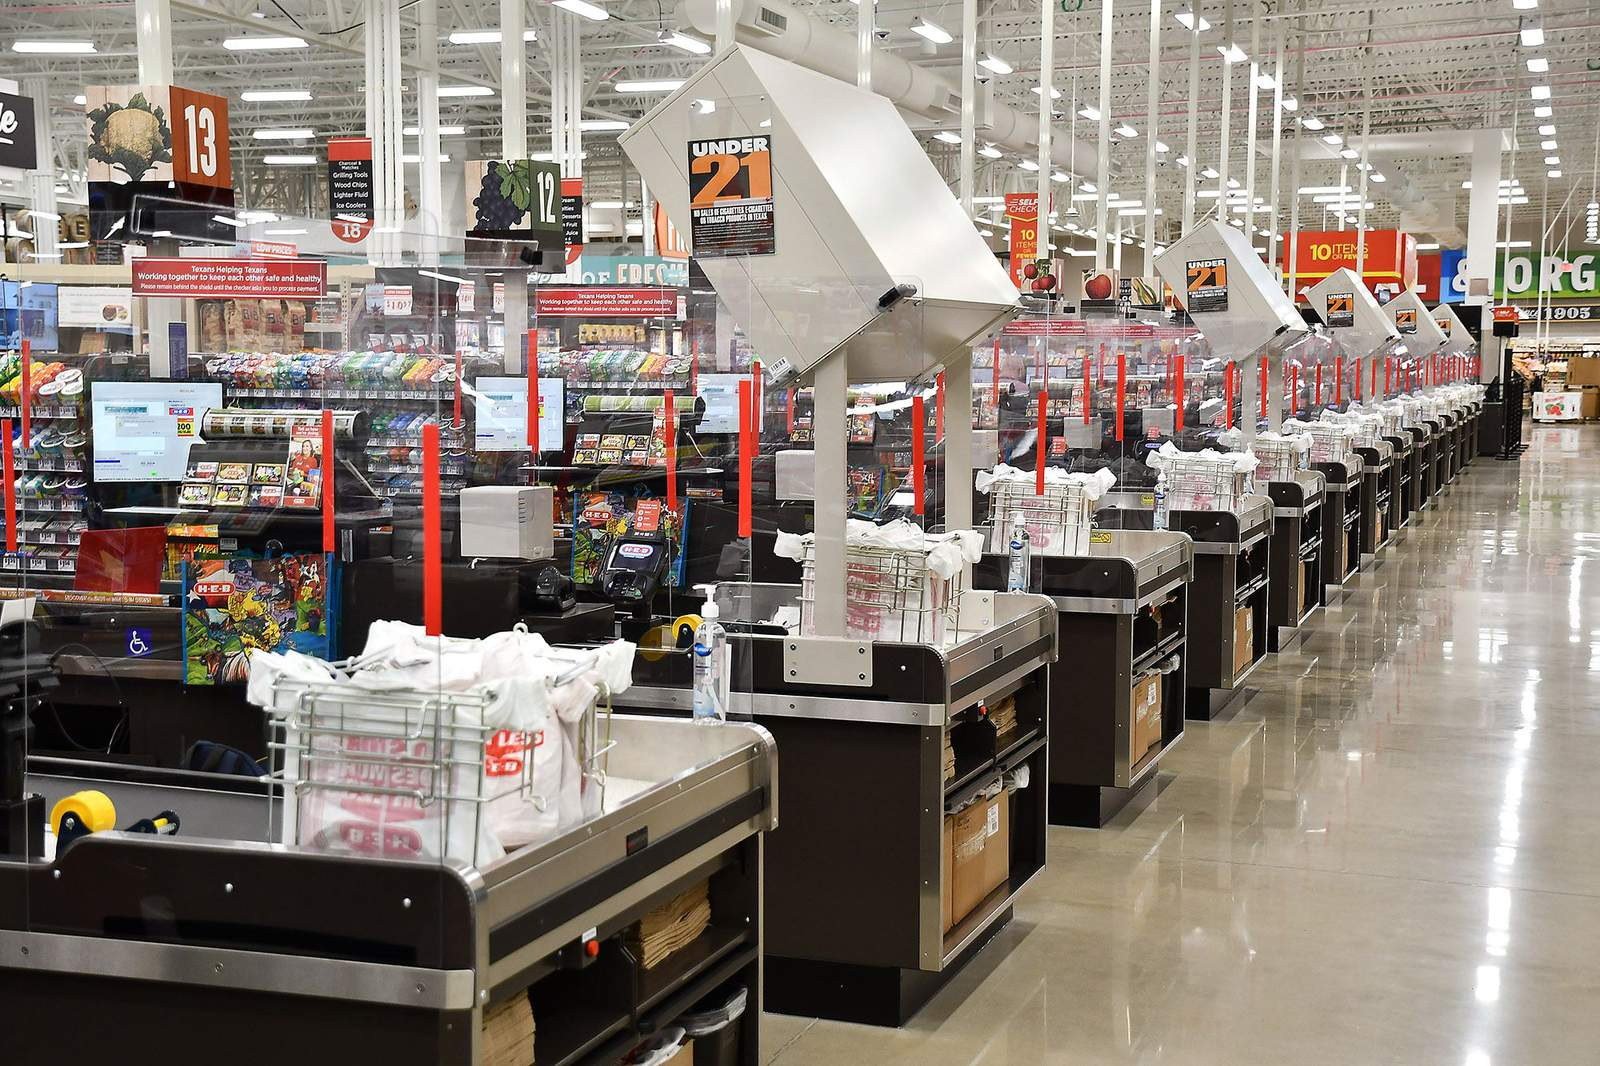 H-E-B limits rest room tissue, hand sanitizers and different merchandise amid COVID-19 pandemic - KPRC Click2Houston thumbnail